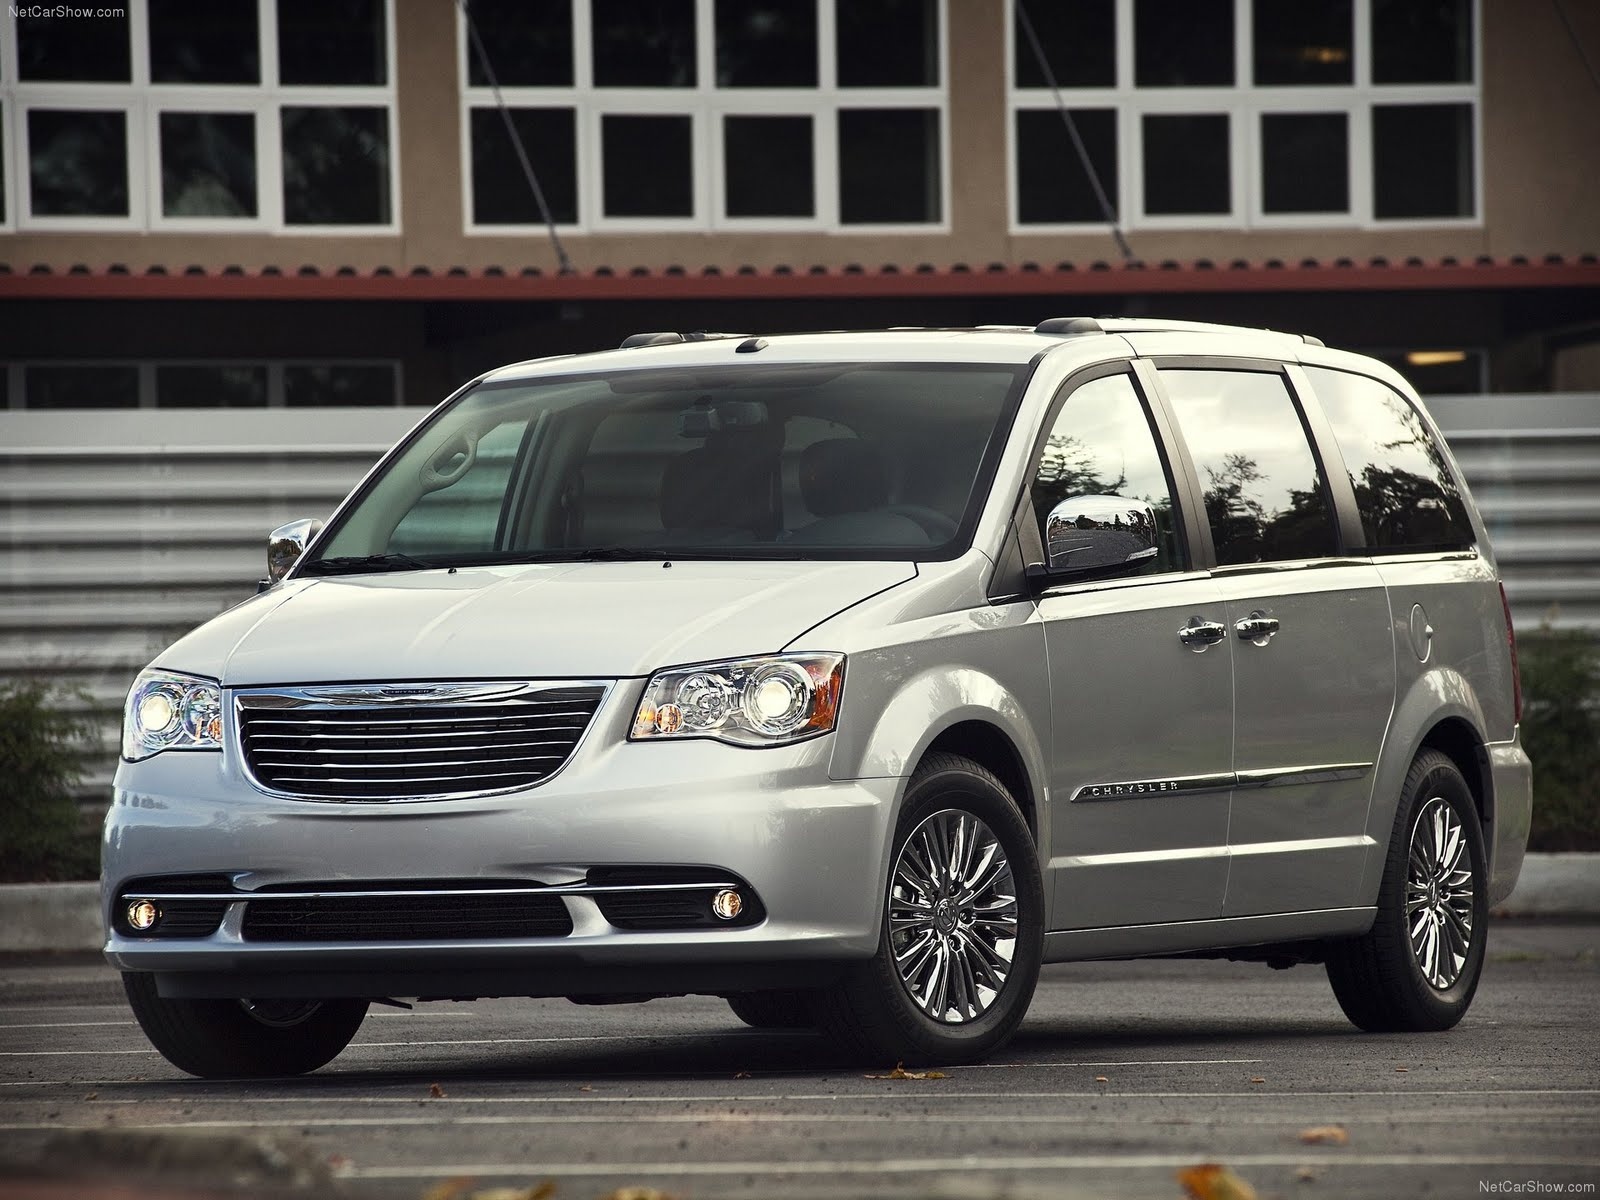 Chrysler town and country colors